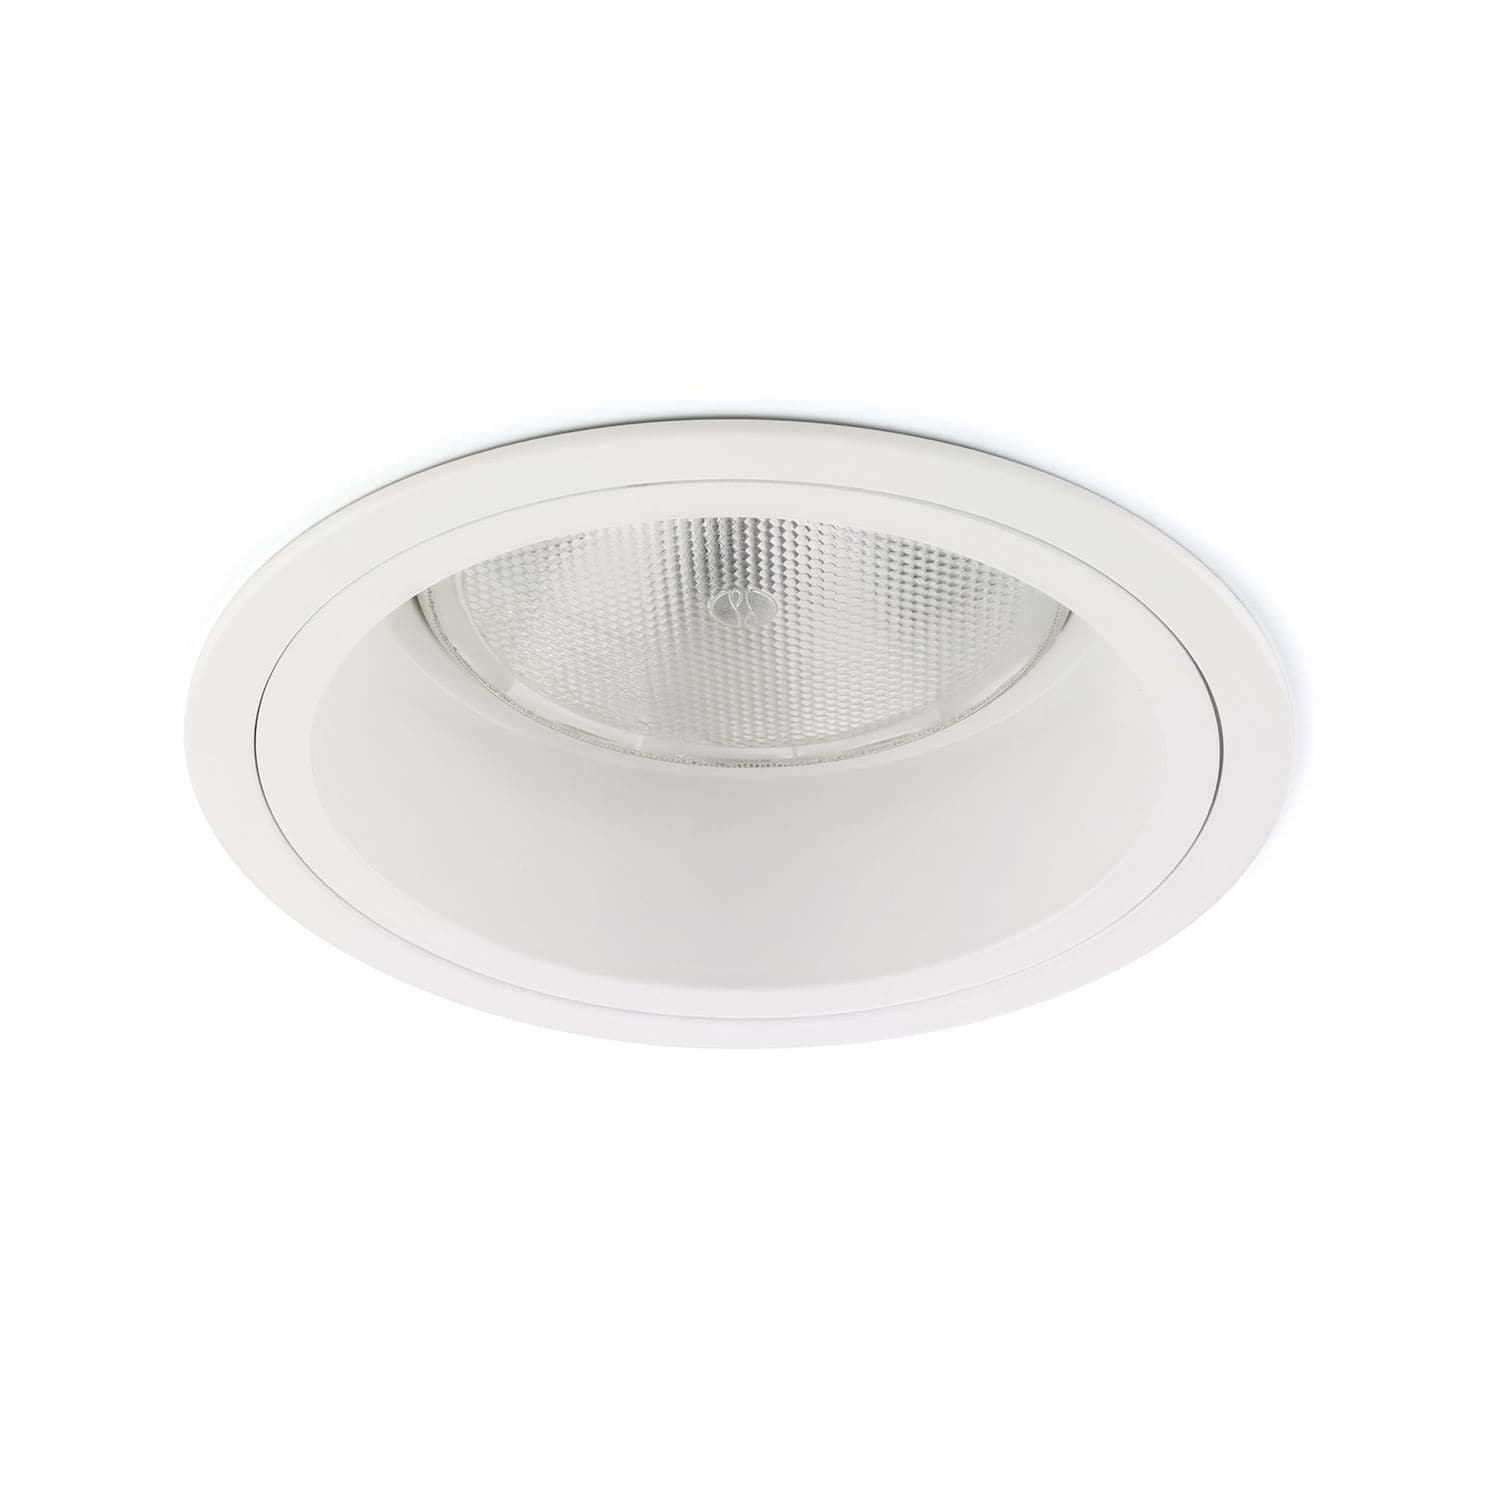 Halogenlampe Led Recessed Downlight Led Halogen Hid Unisio Reggiani